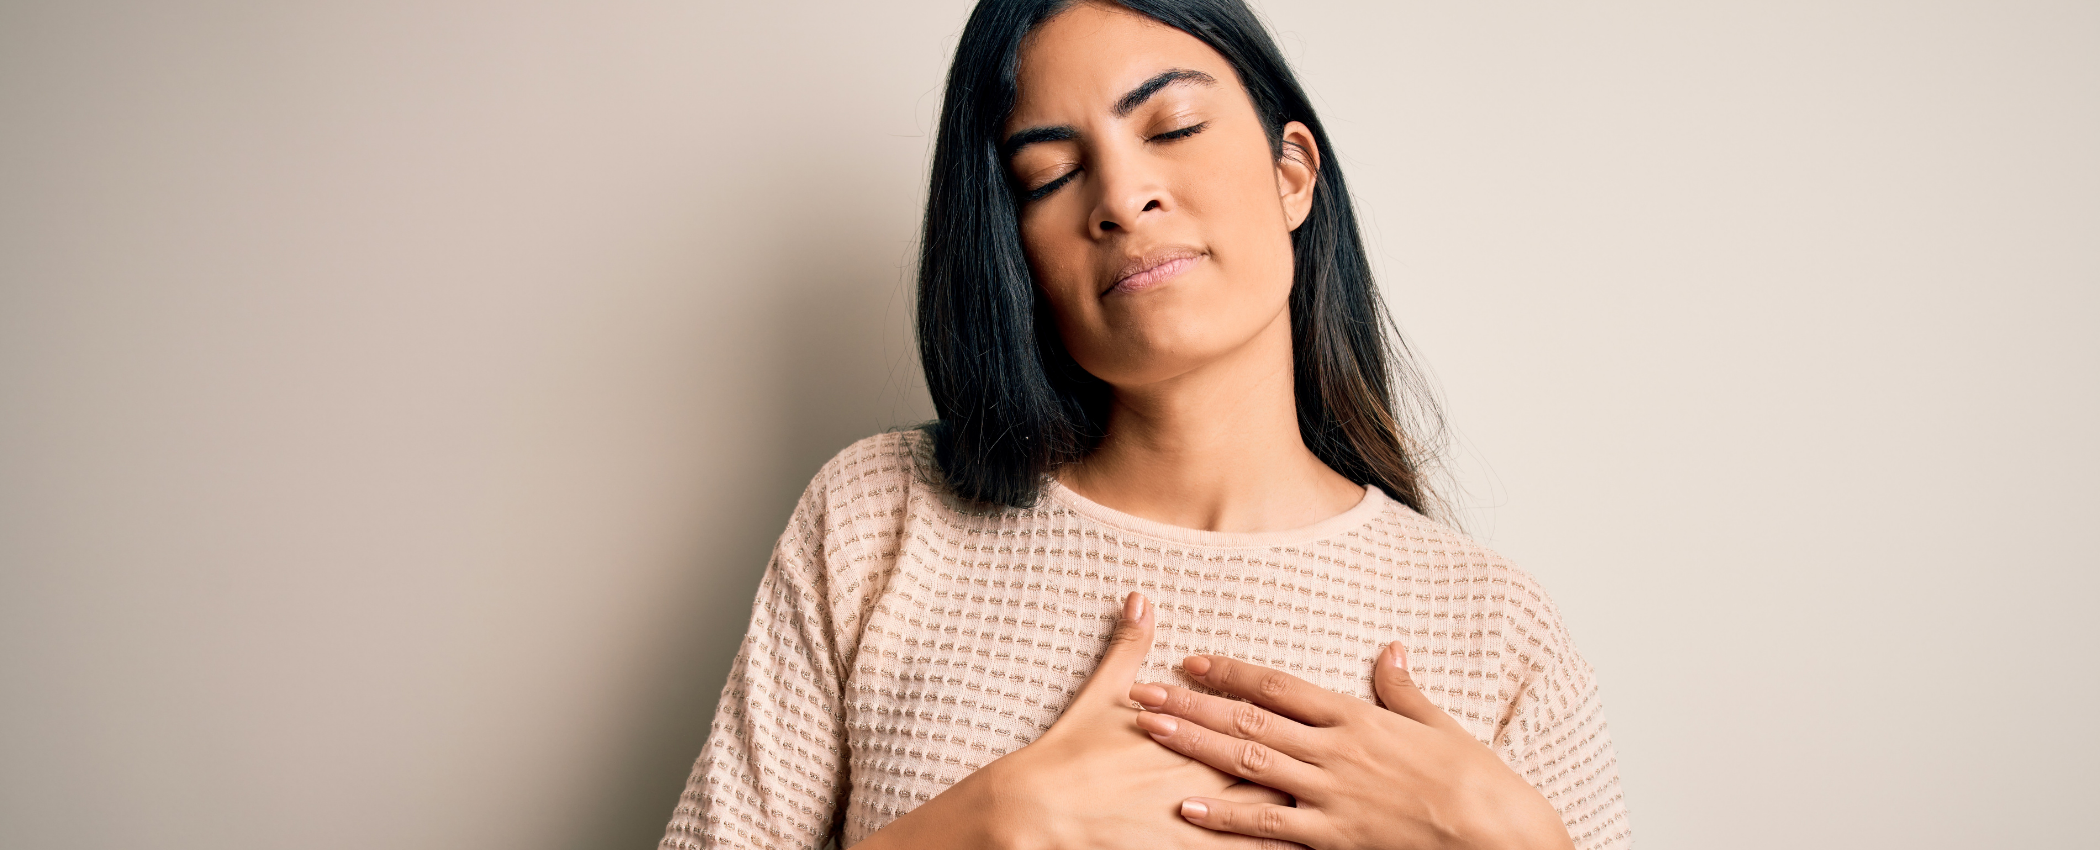 Female heart attack survivors worse off than men: new data